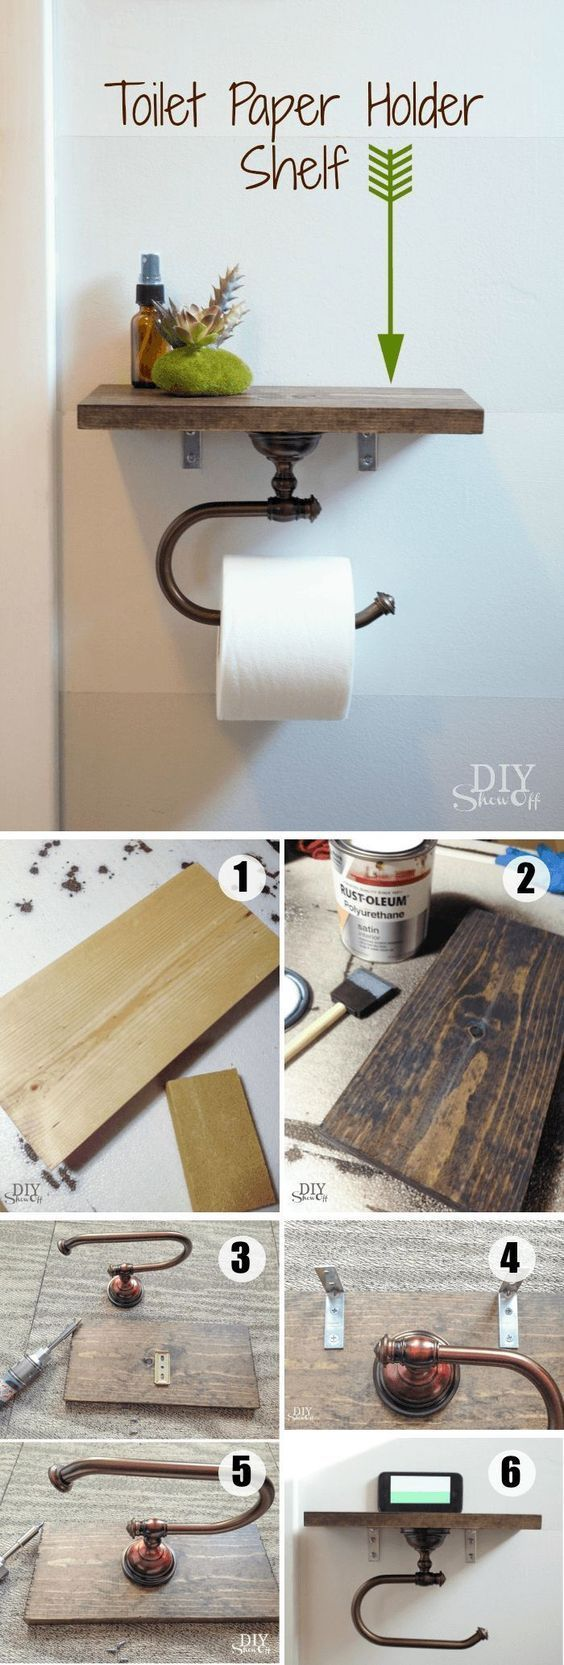 DIY Toilet Paper Holder with Shelf Use this clever and functional